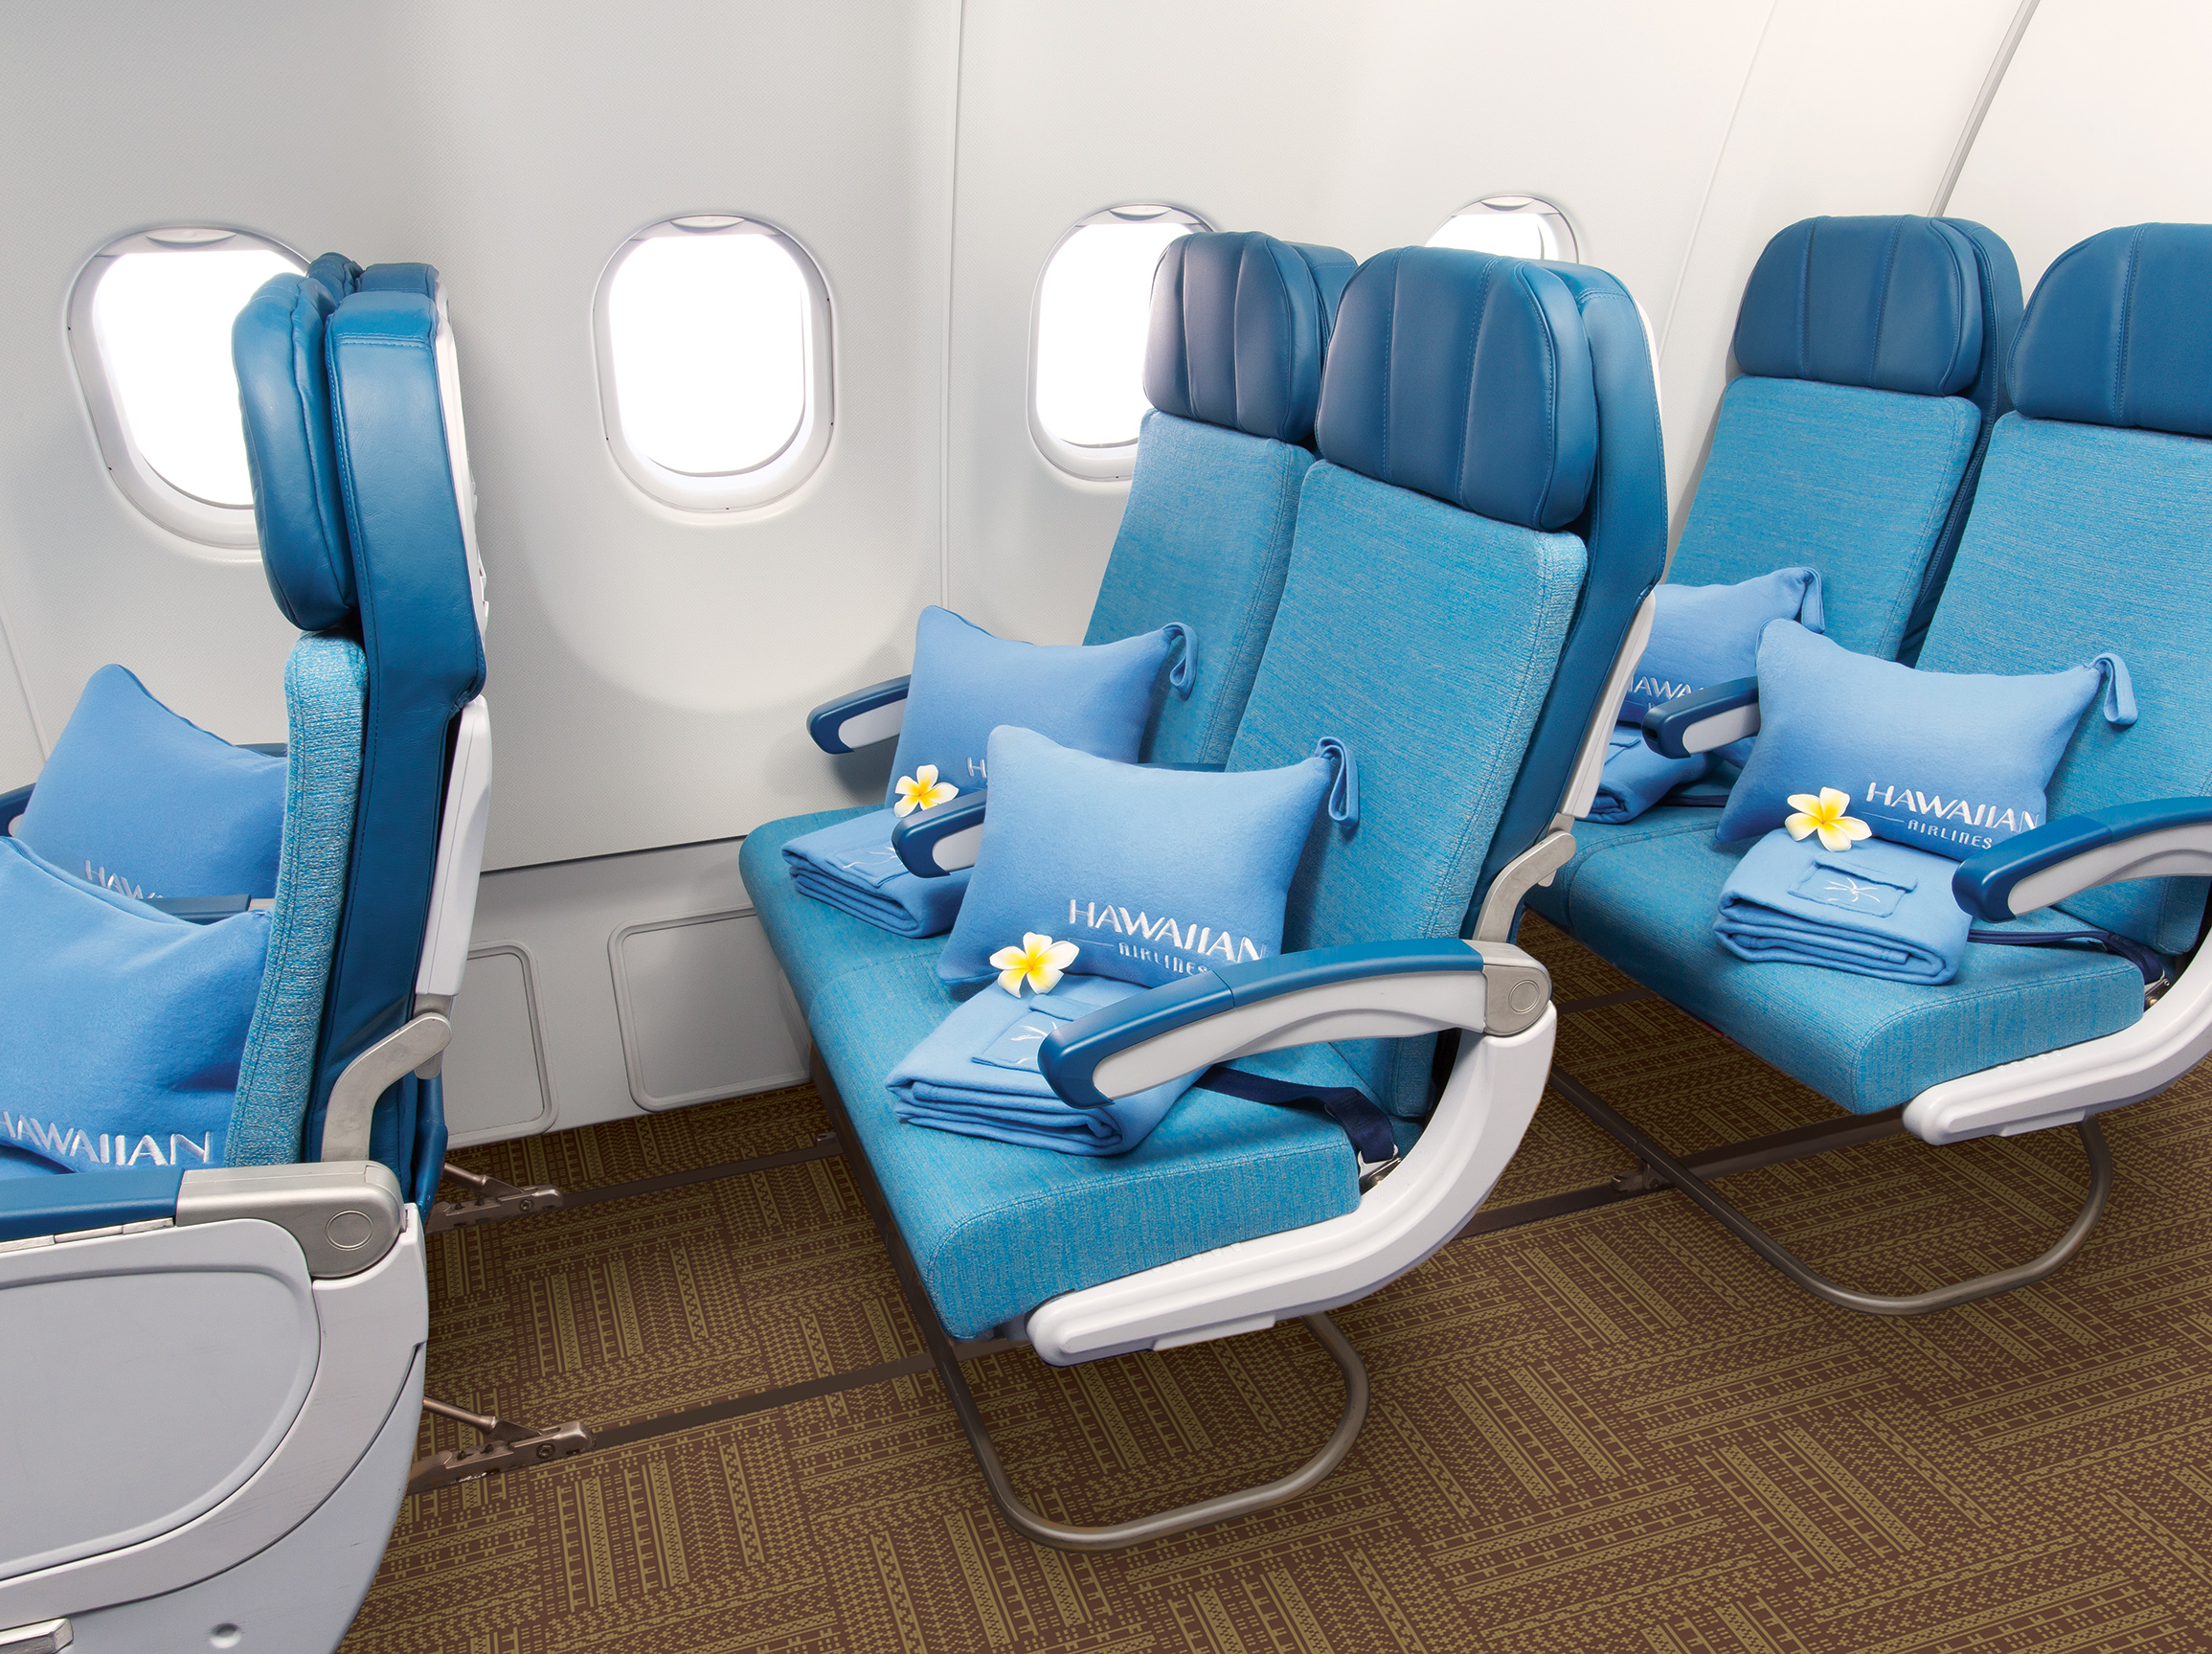 Pic my etihad pearl business class seat 9h on b777 300er may 2012 - 6351 Rae Huo Photo For Hawaiian Airlines 10 13seats